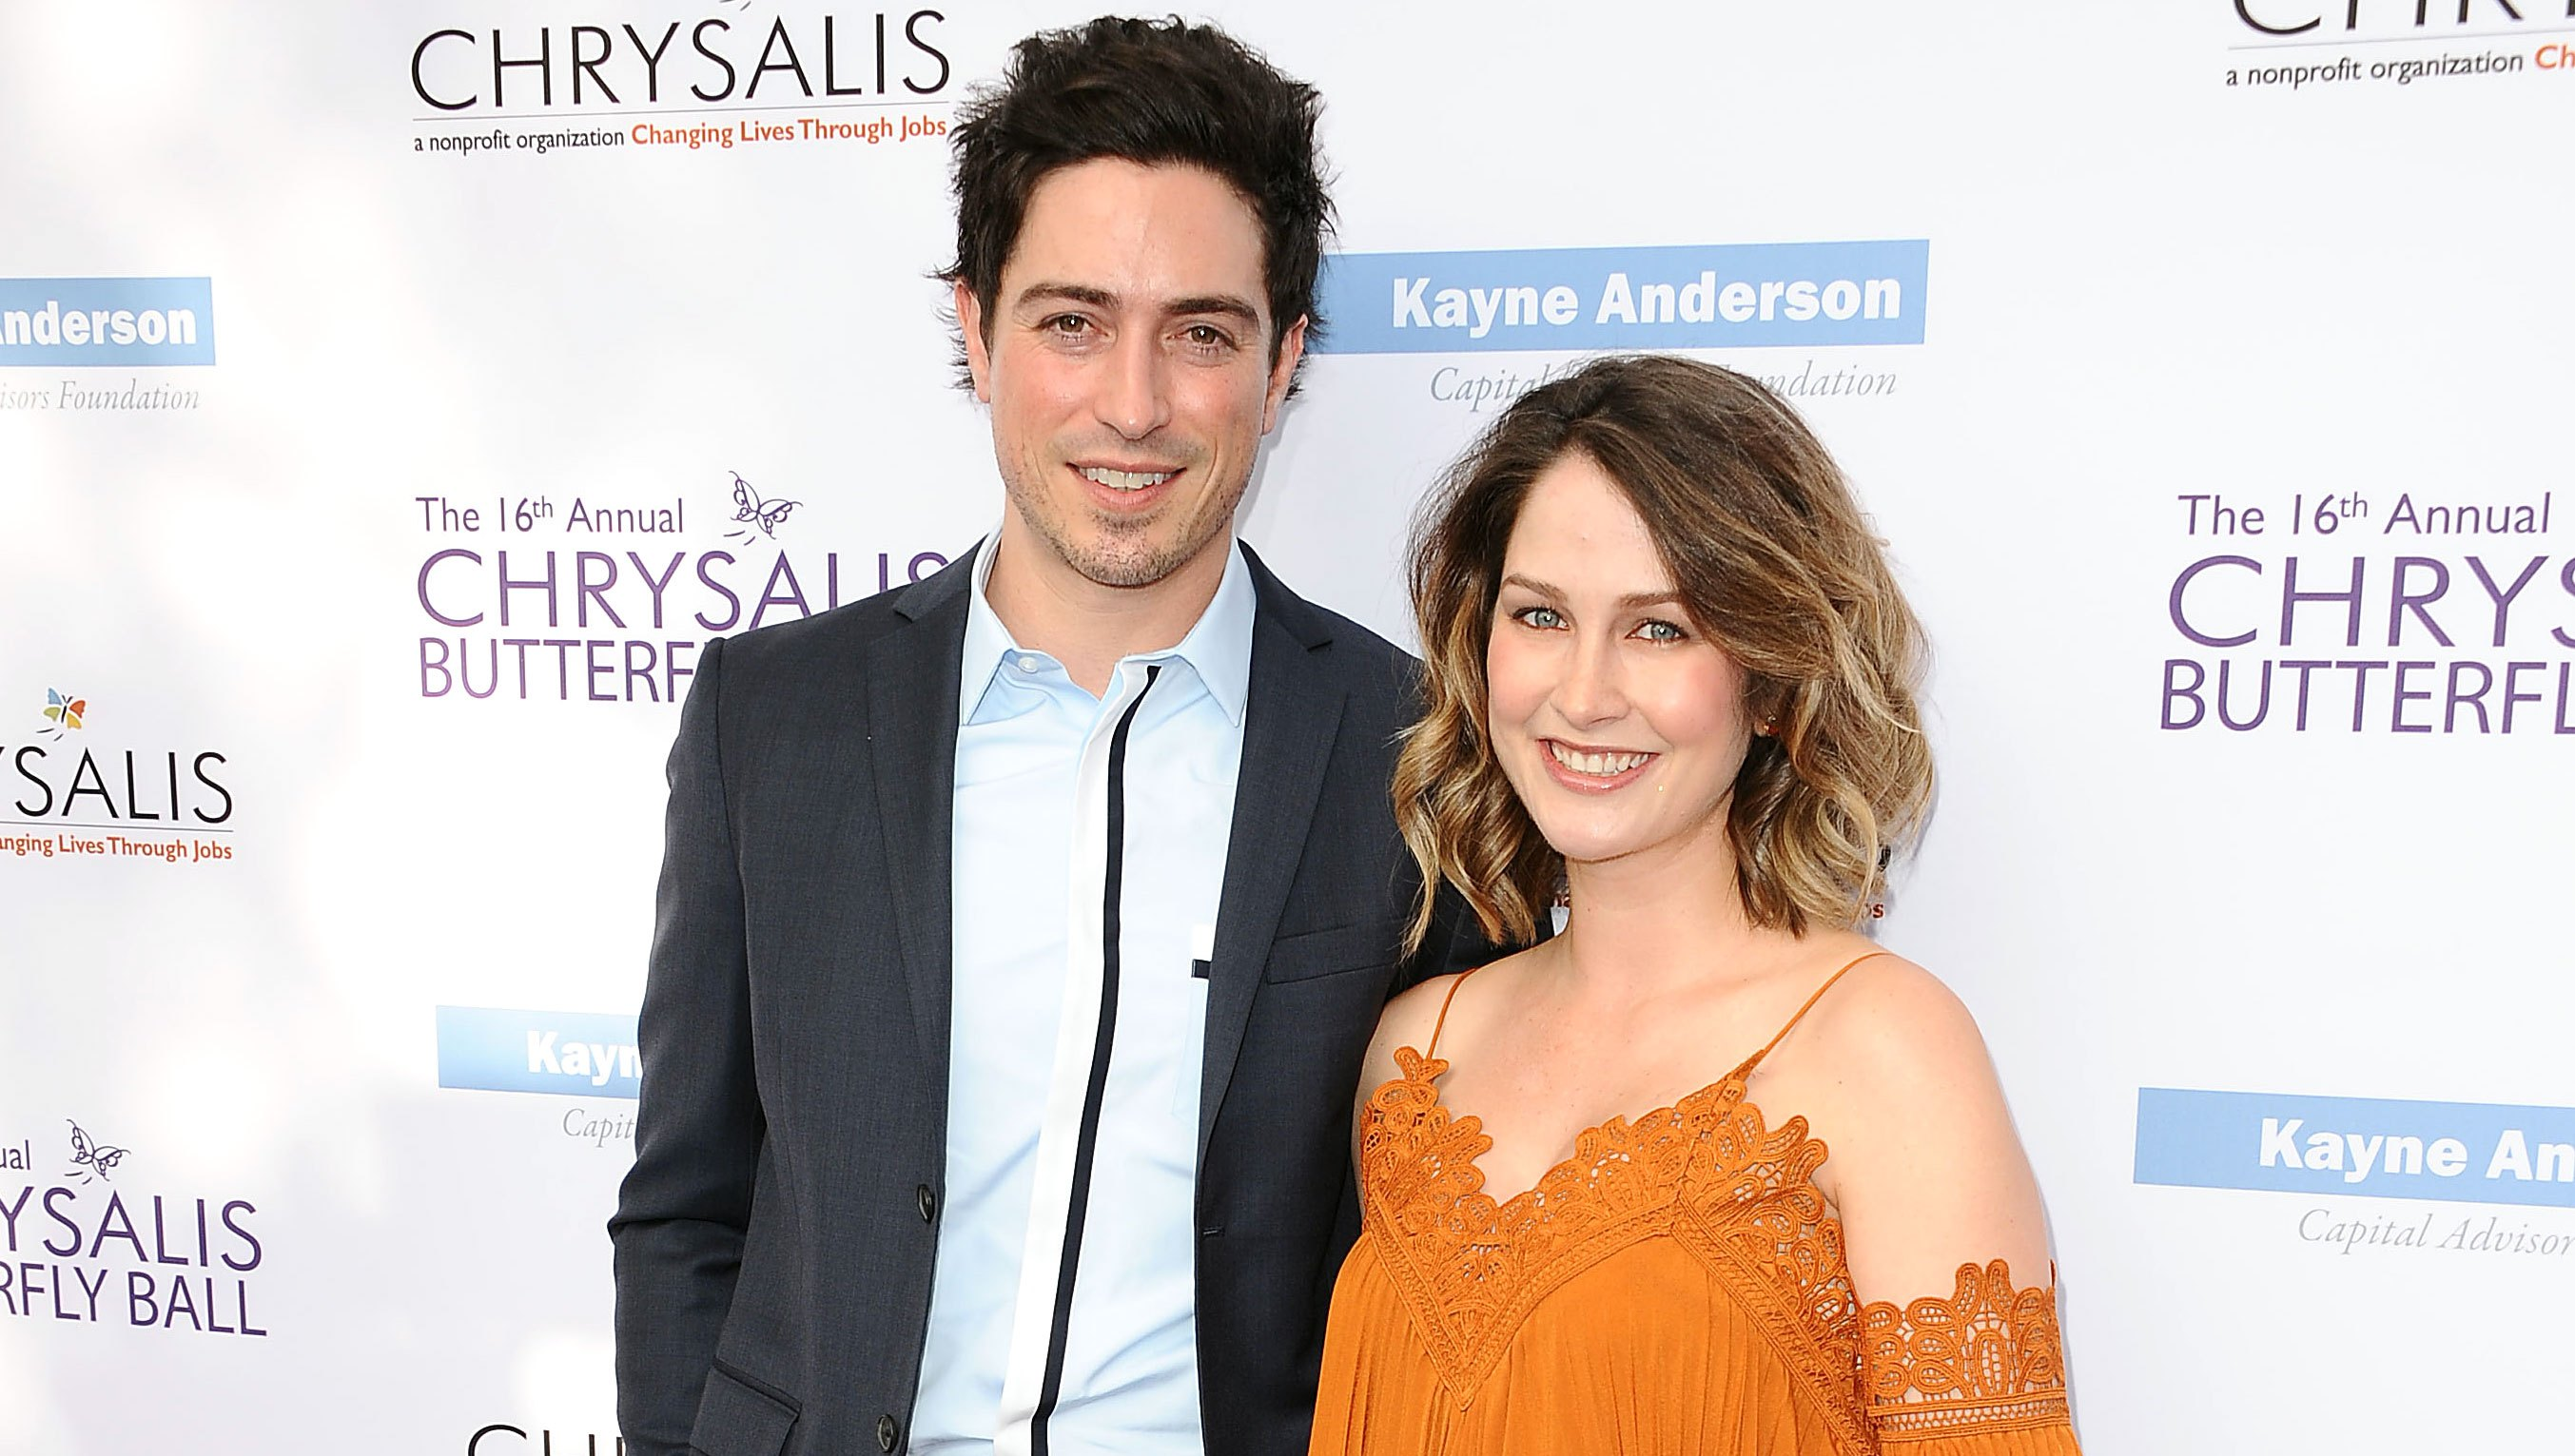 Ben Feldman Accidentally Announces That Wife Michelle Gave Birth to Baby No 2 Chrysalis Butterfly Ball